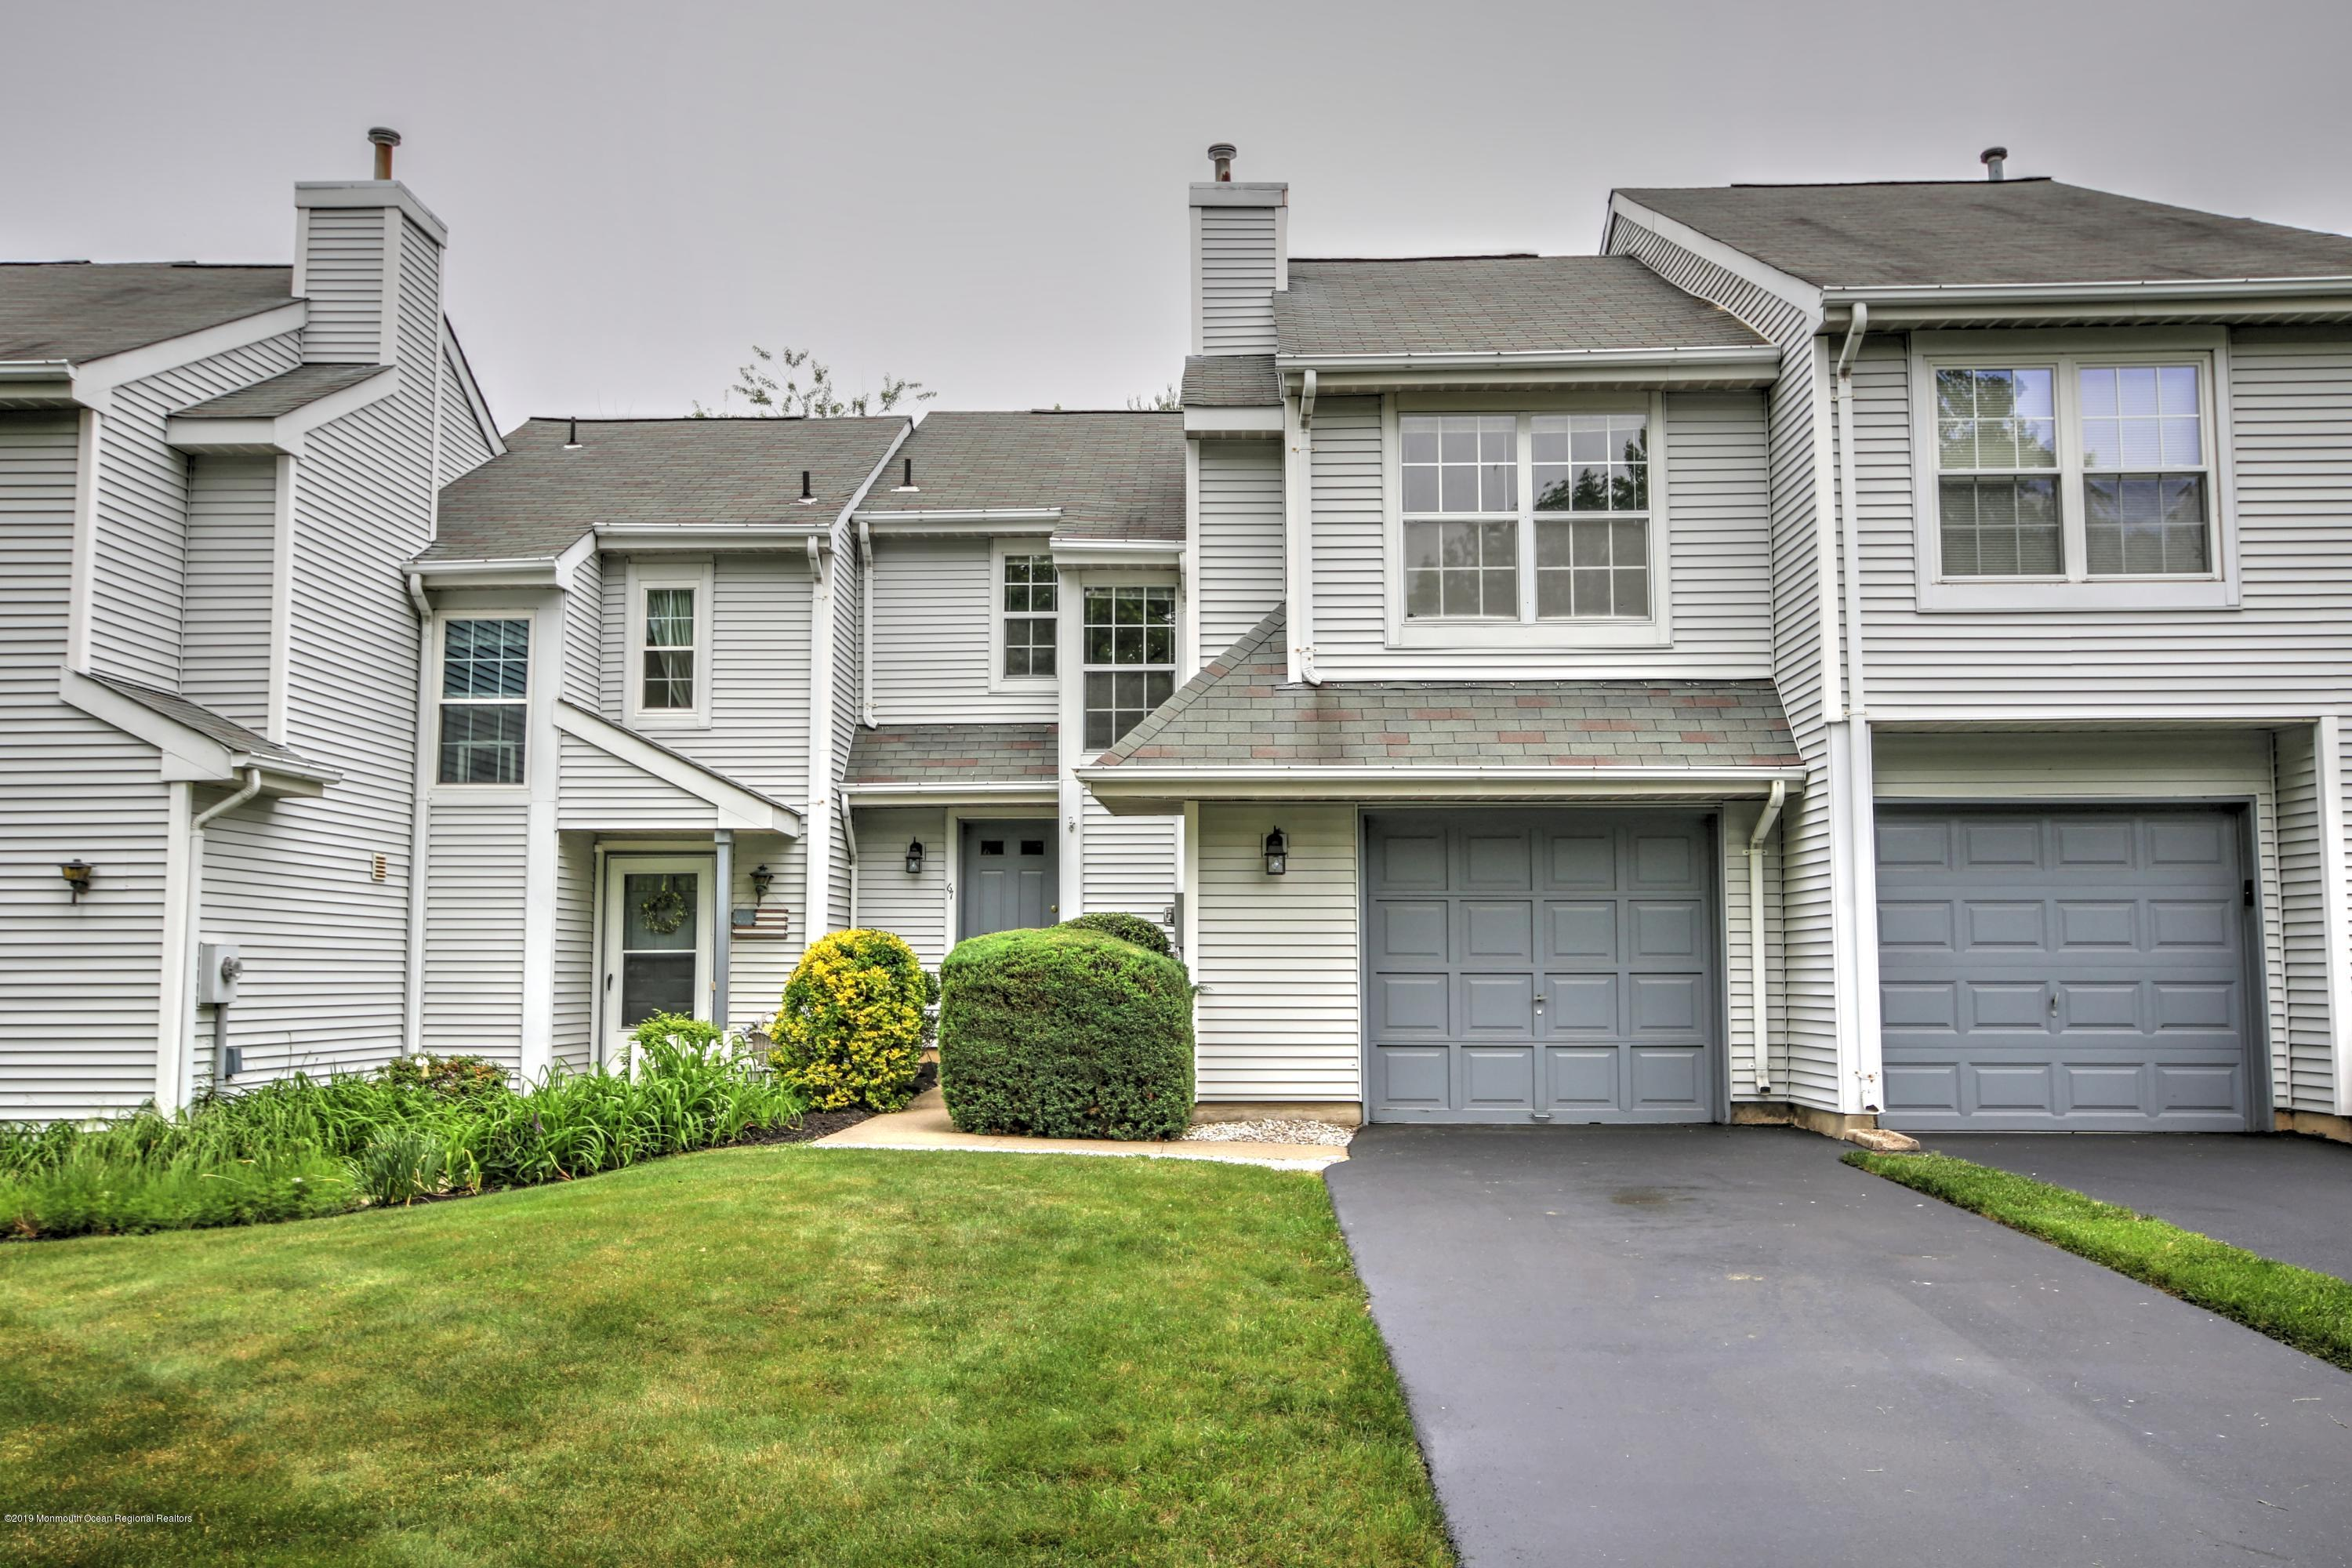 Brookwood Townhouses and Condos for Sale in Eatontown NJ 07724